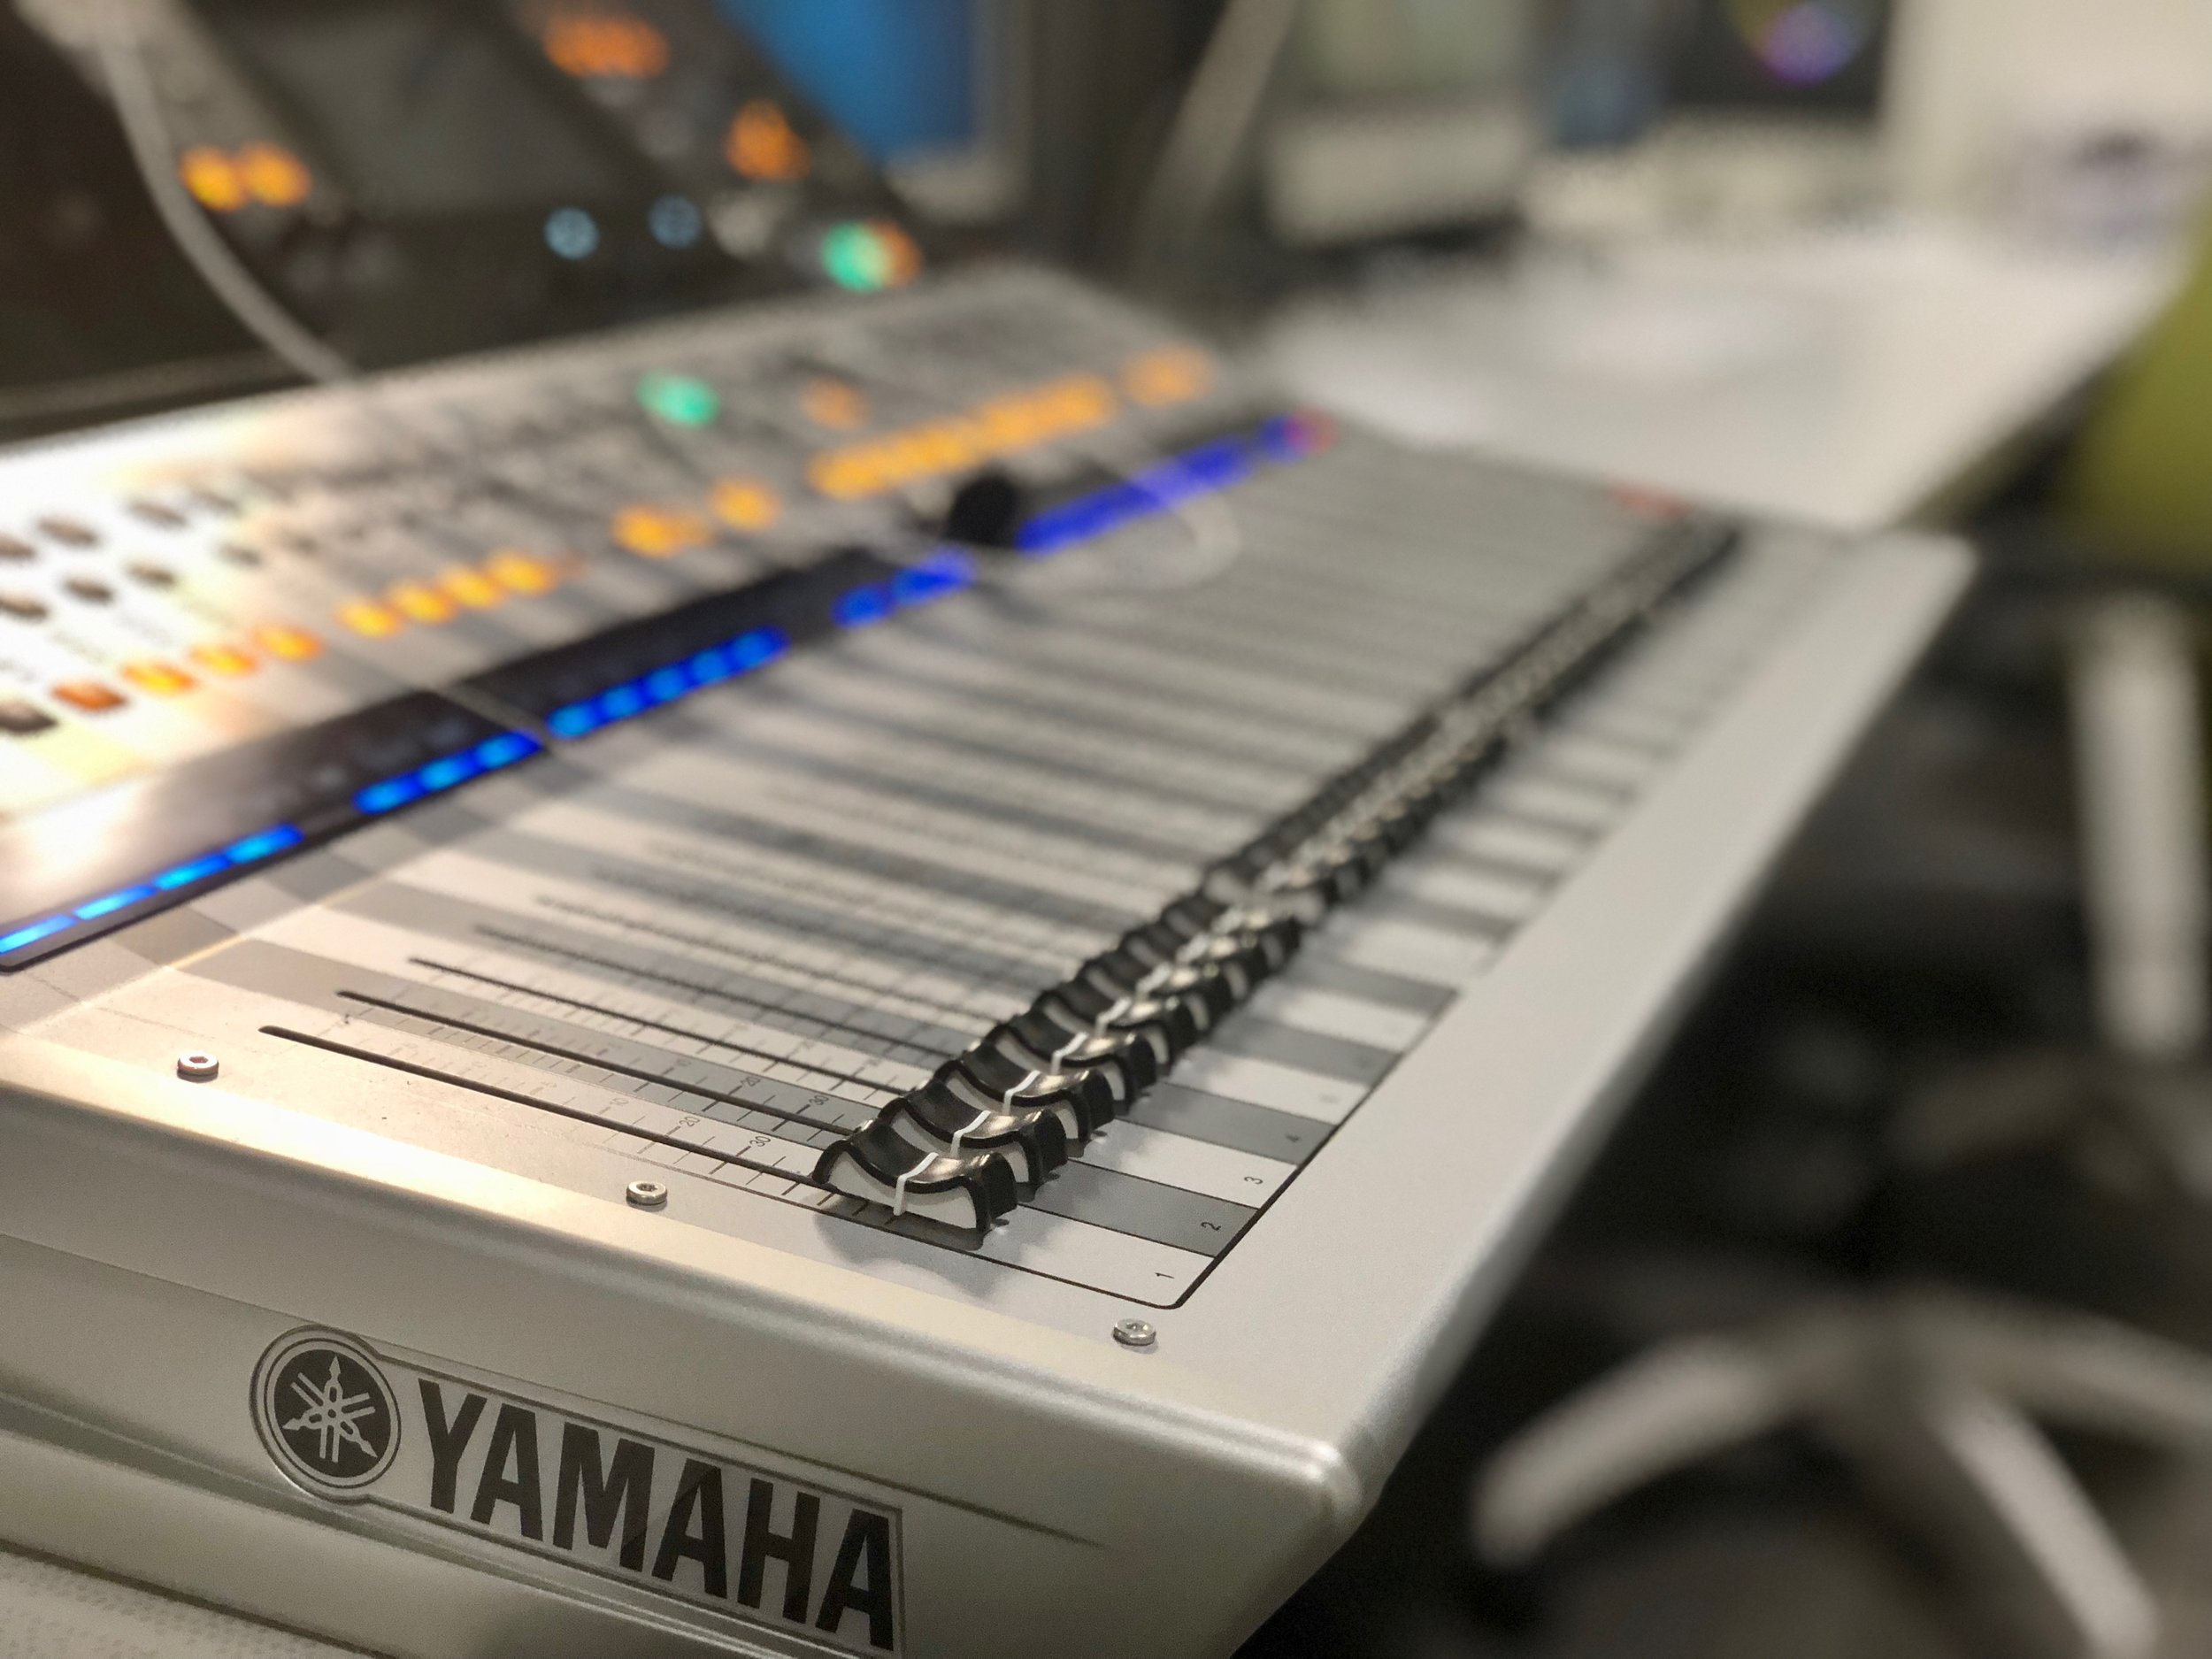 Yamaha TF-5 Series console provides excellent sound quality in this multipurpose venue.